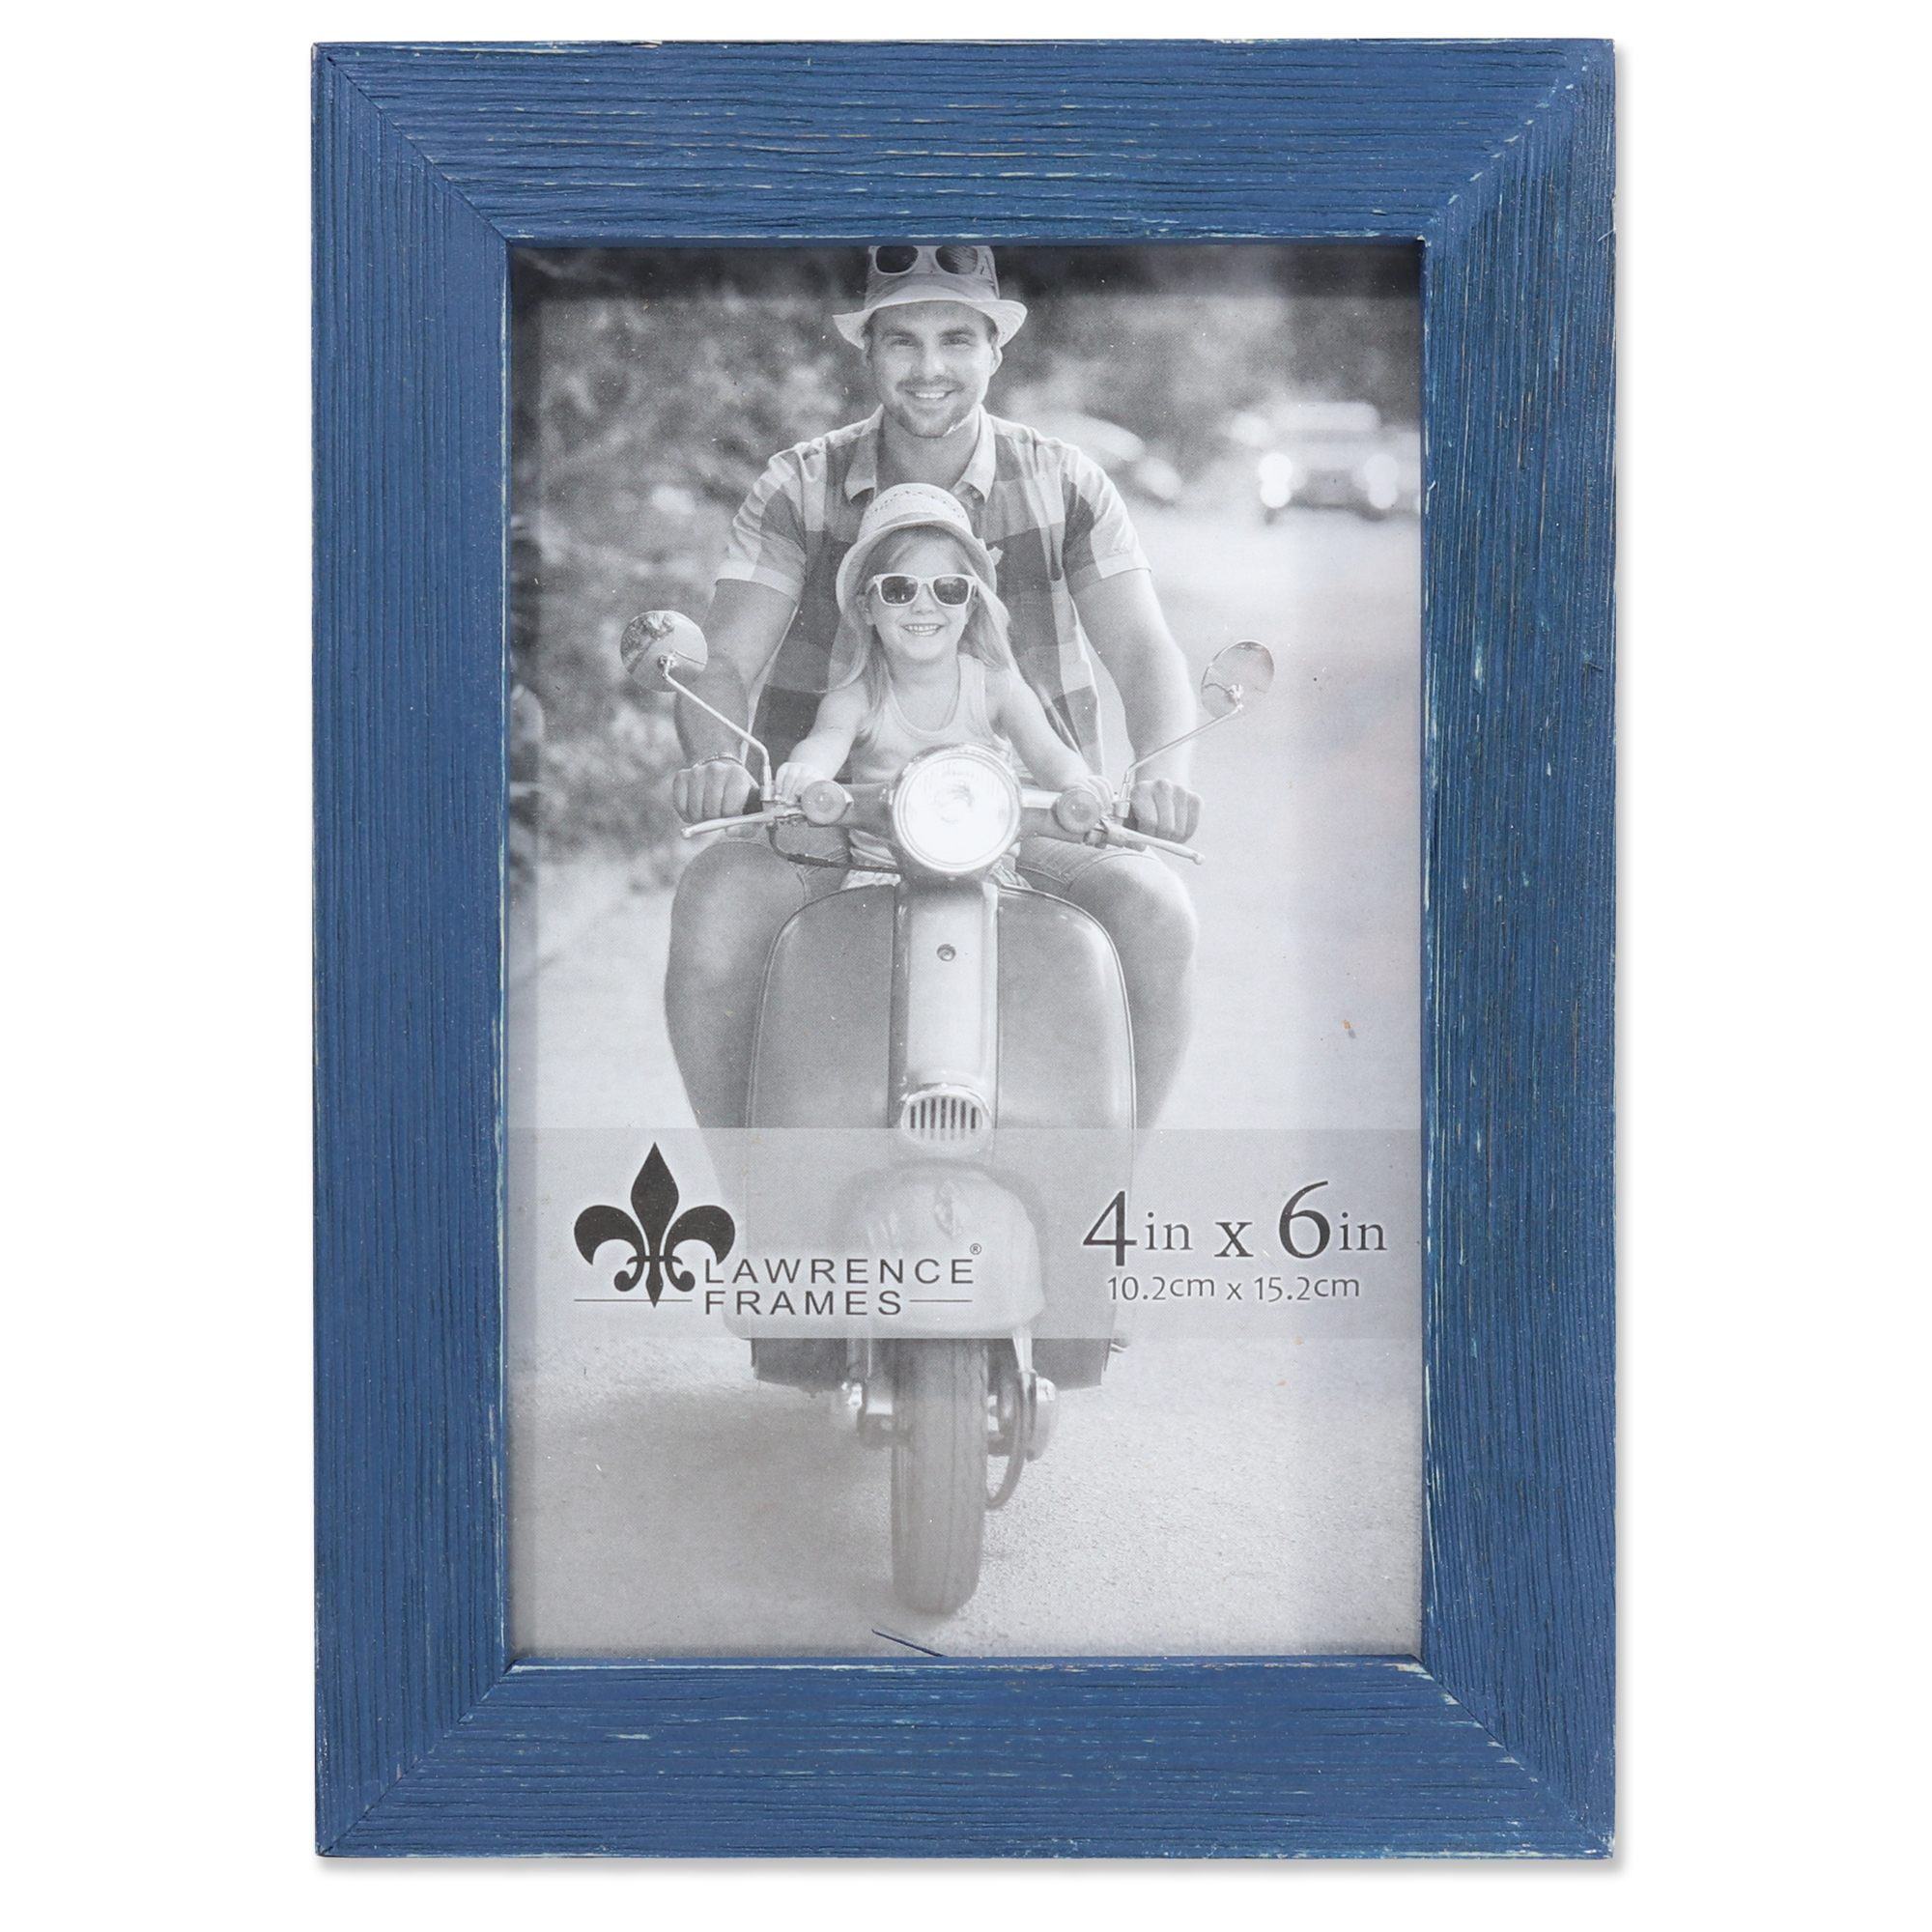 4x6 Charlotte Weathered Navy Blue Wood Picture Frame | PhotoFrames.net